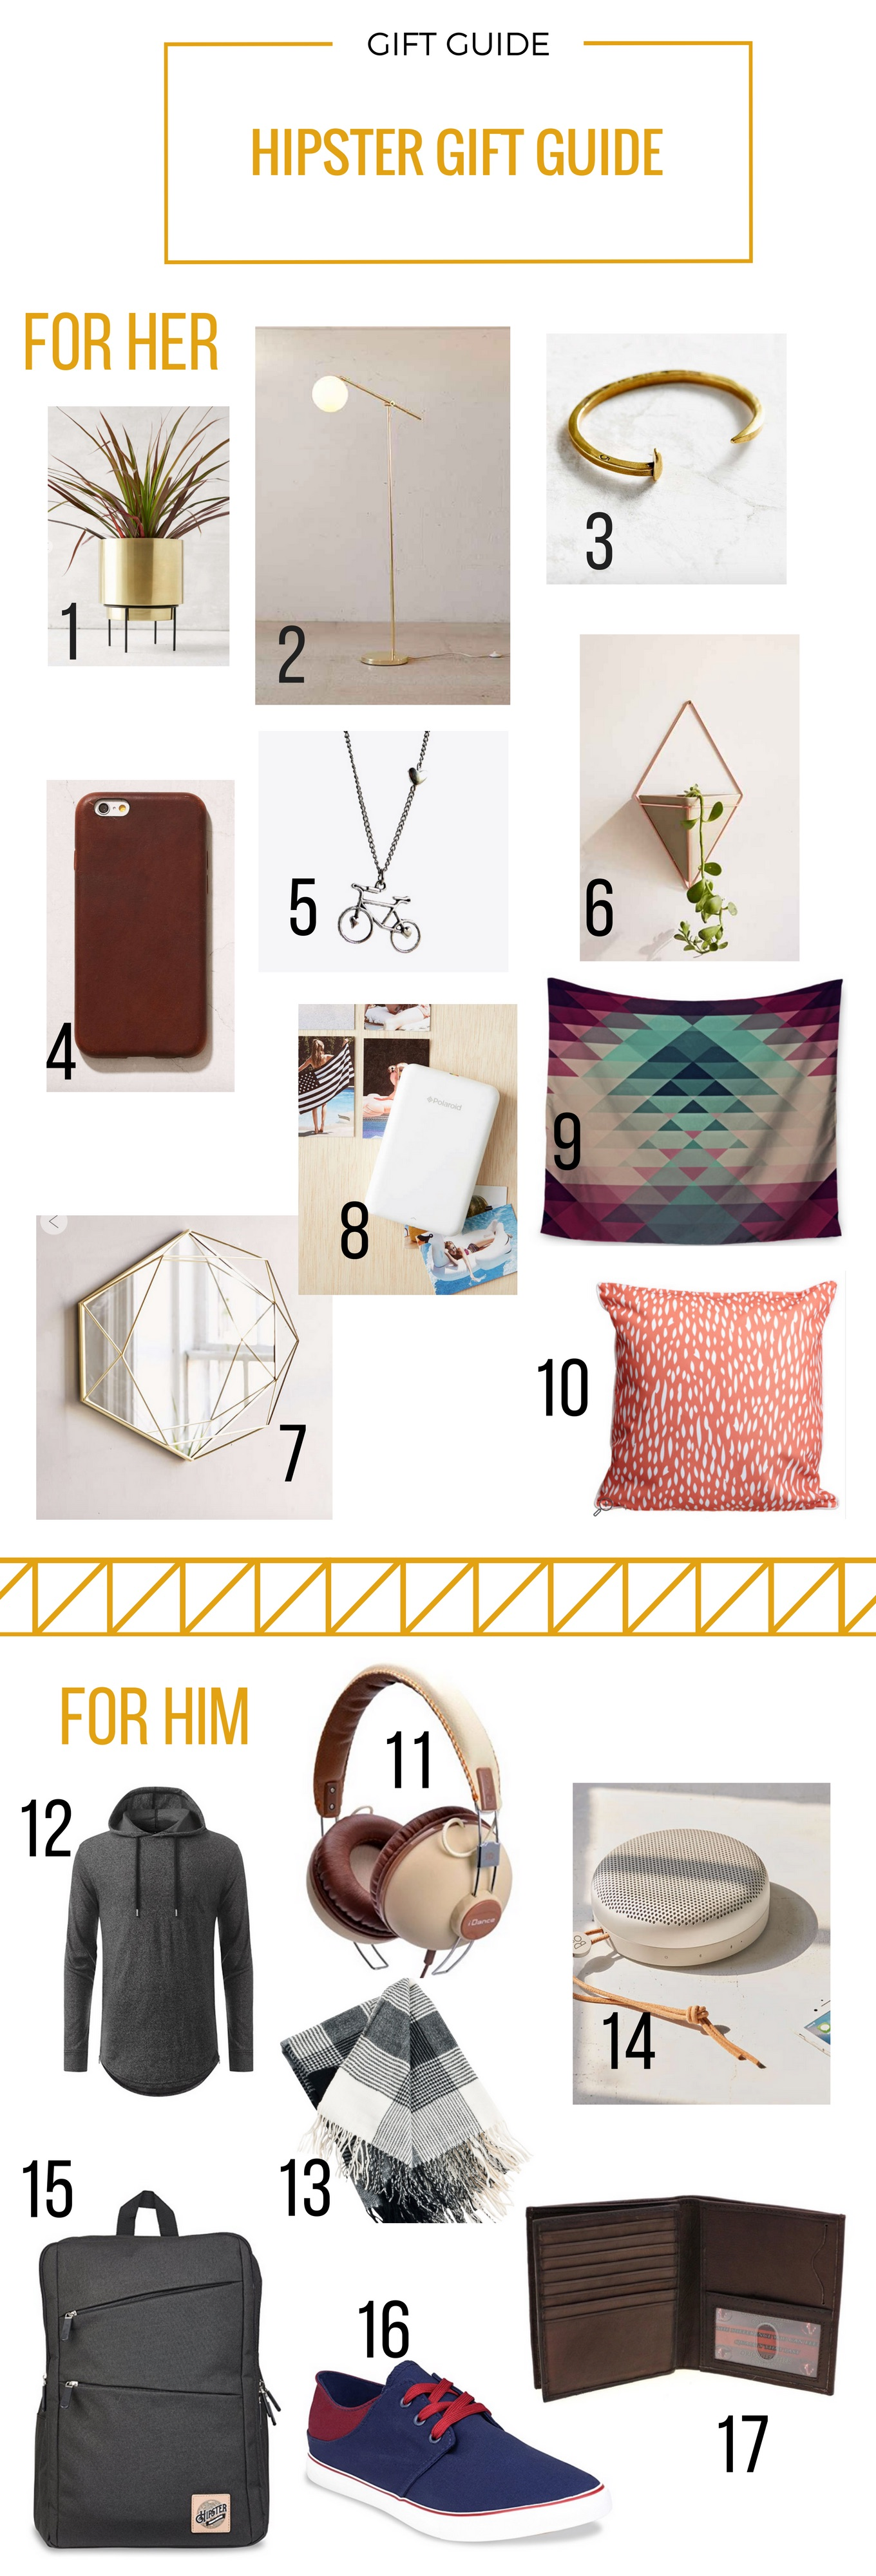 hipster-gift-guide